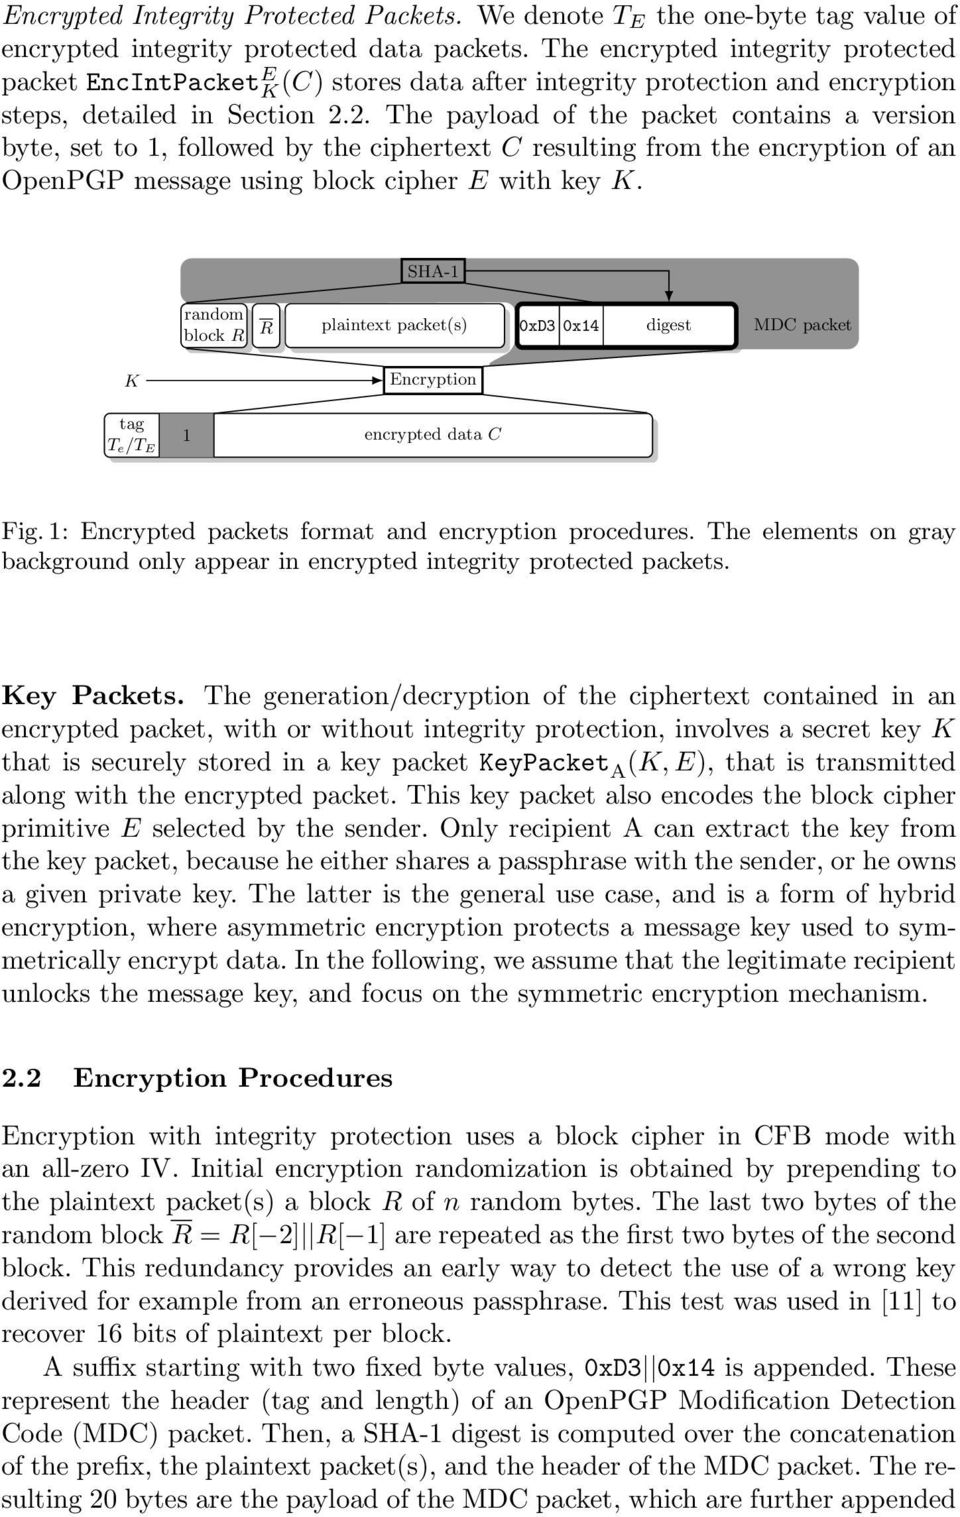 2. The payload of the packet contains a version byte, set to 1, followed by the ciphertext C resulting from the encryption of an OpenPGP message using block cipher E with key K.